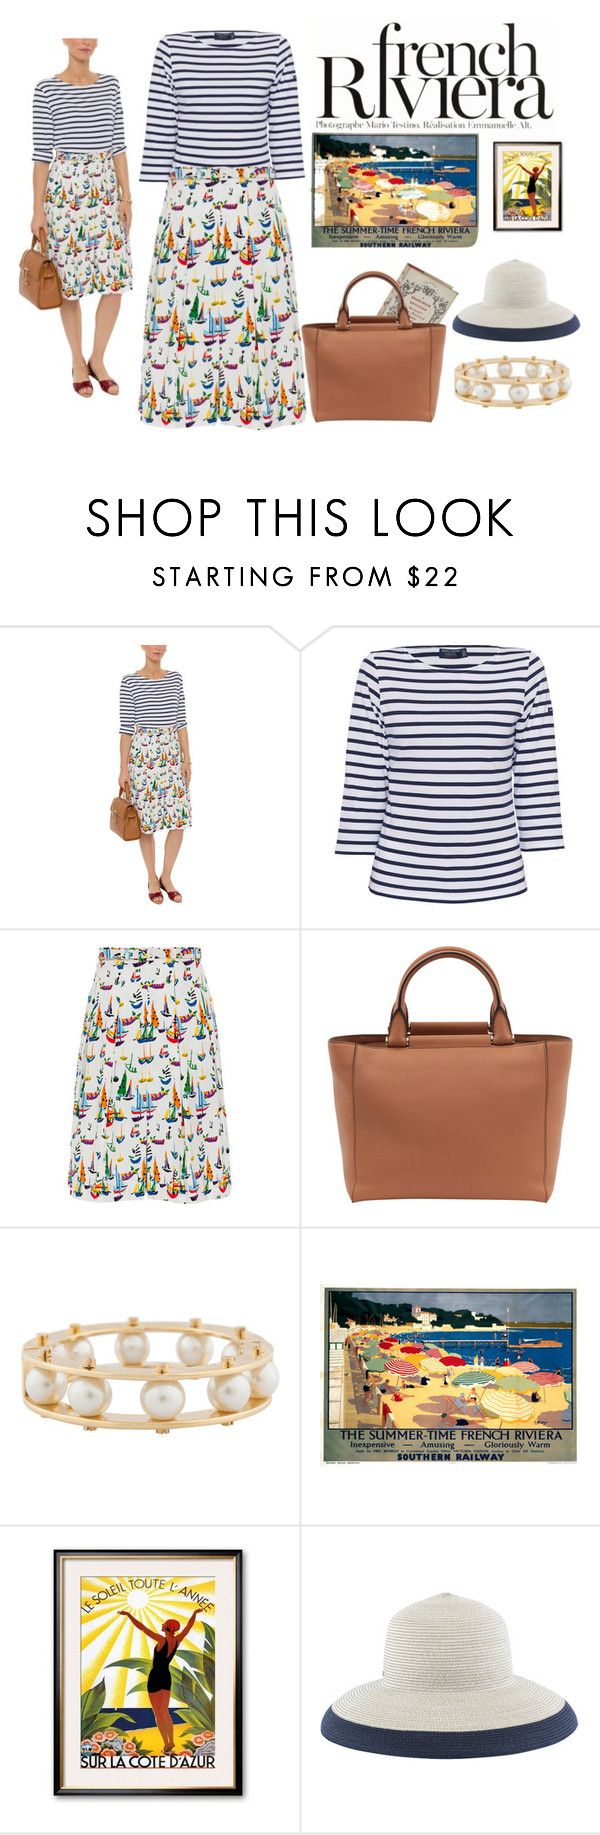 """""""Come Sail Away   French Riviera Style"""" by halsbrook ❤ liked on Polyvore featuring Anja, Saint James, MaxMara, Lele Sadoughi and Inverni"""